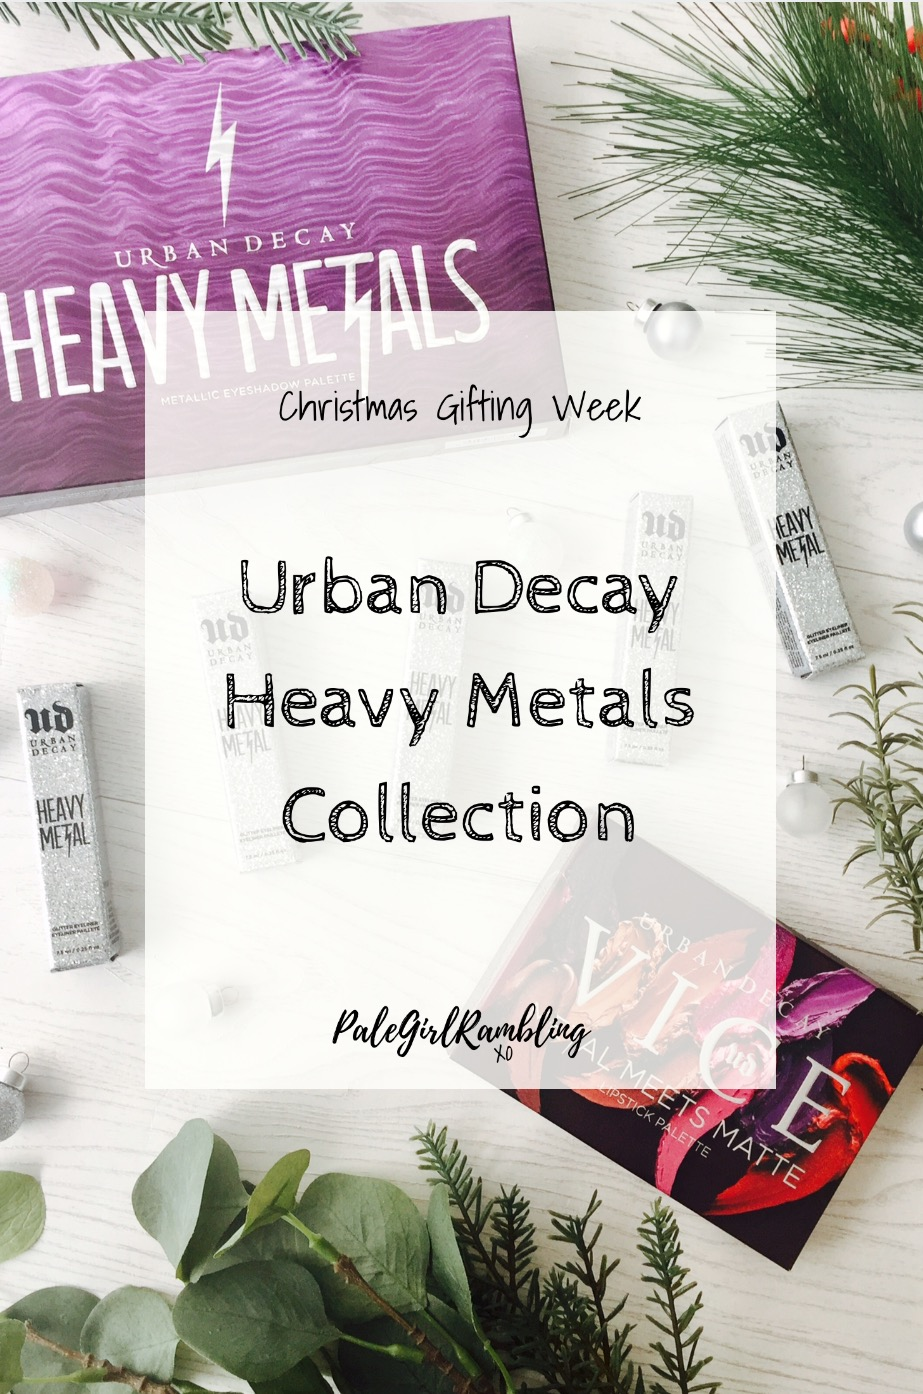 Urban Decay Heavy Metals Collection Vice Lip Palette Glitter Eyeliners New Release swatches